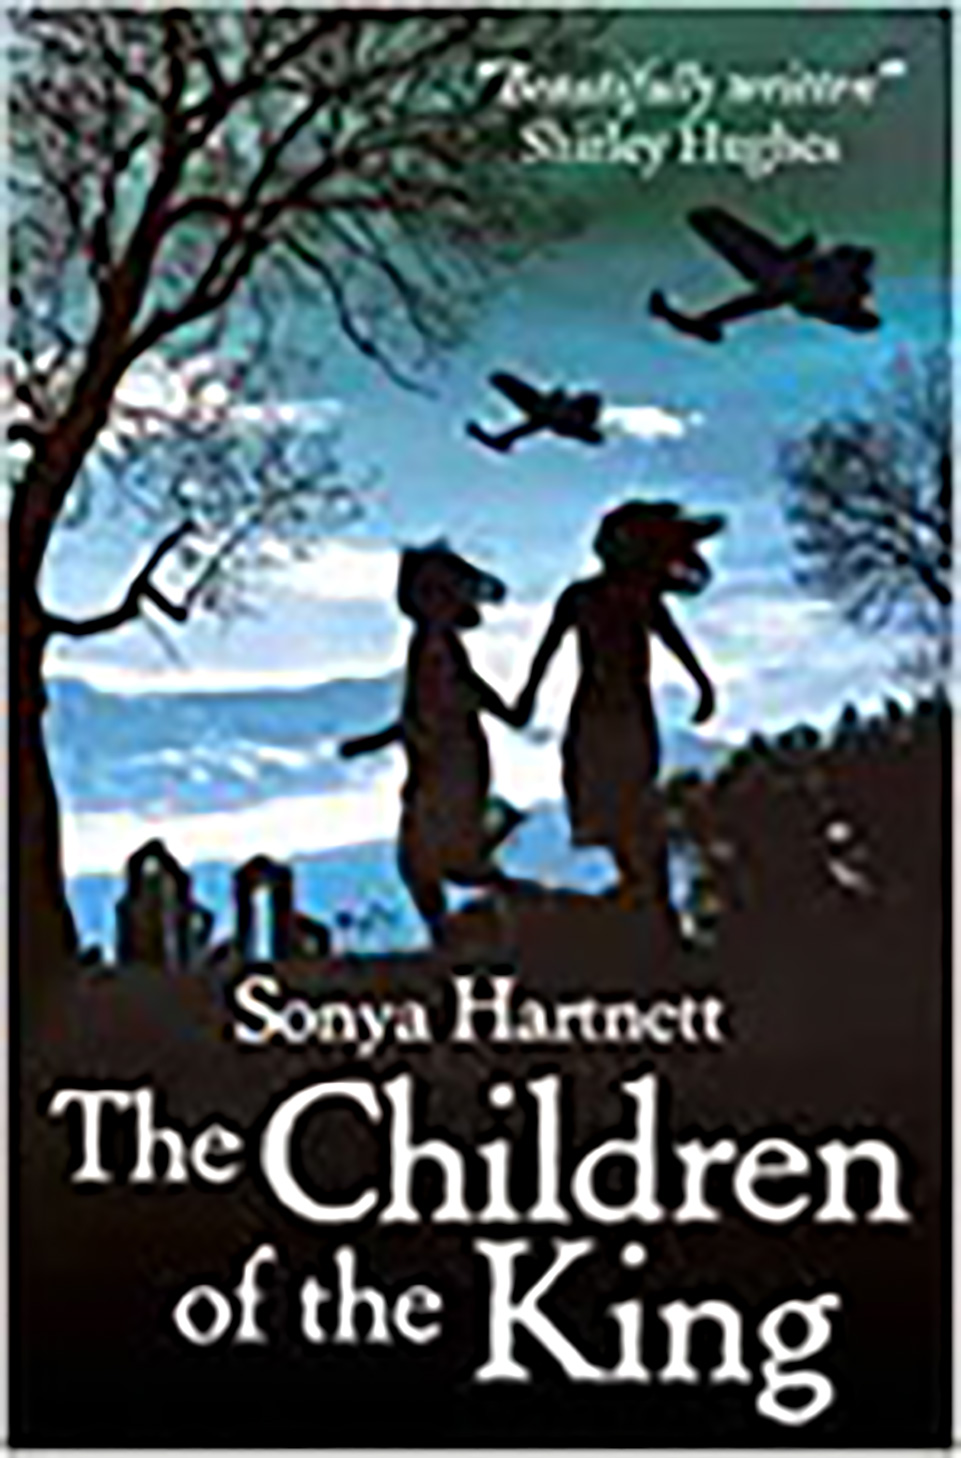 front cover of a book: The Children of the King's Man by Sonya Hartnett